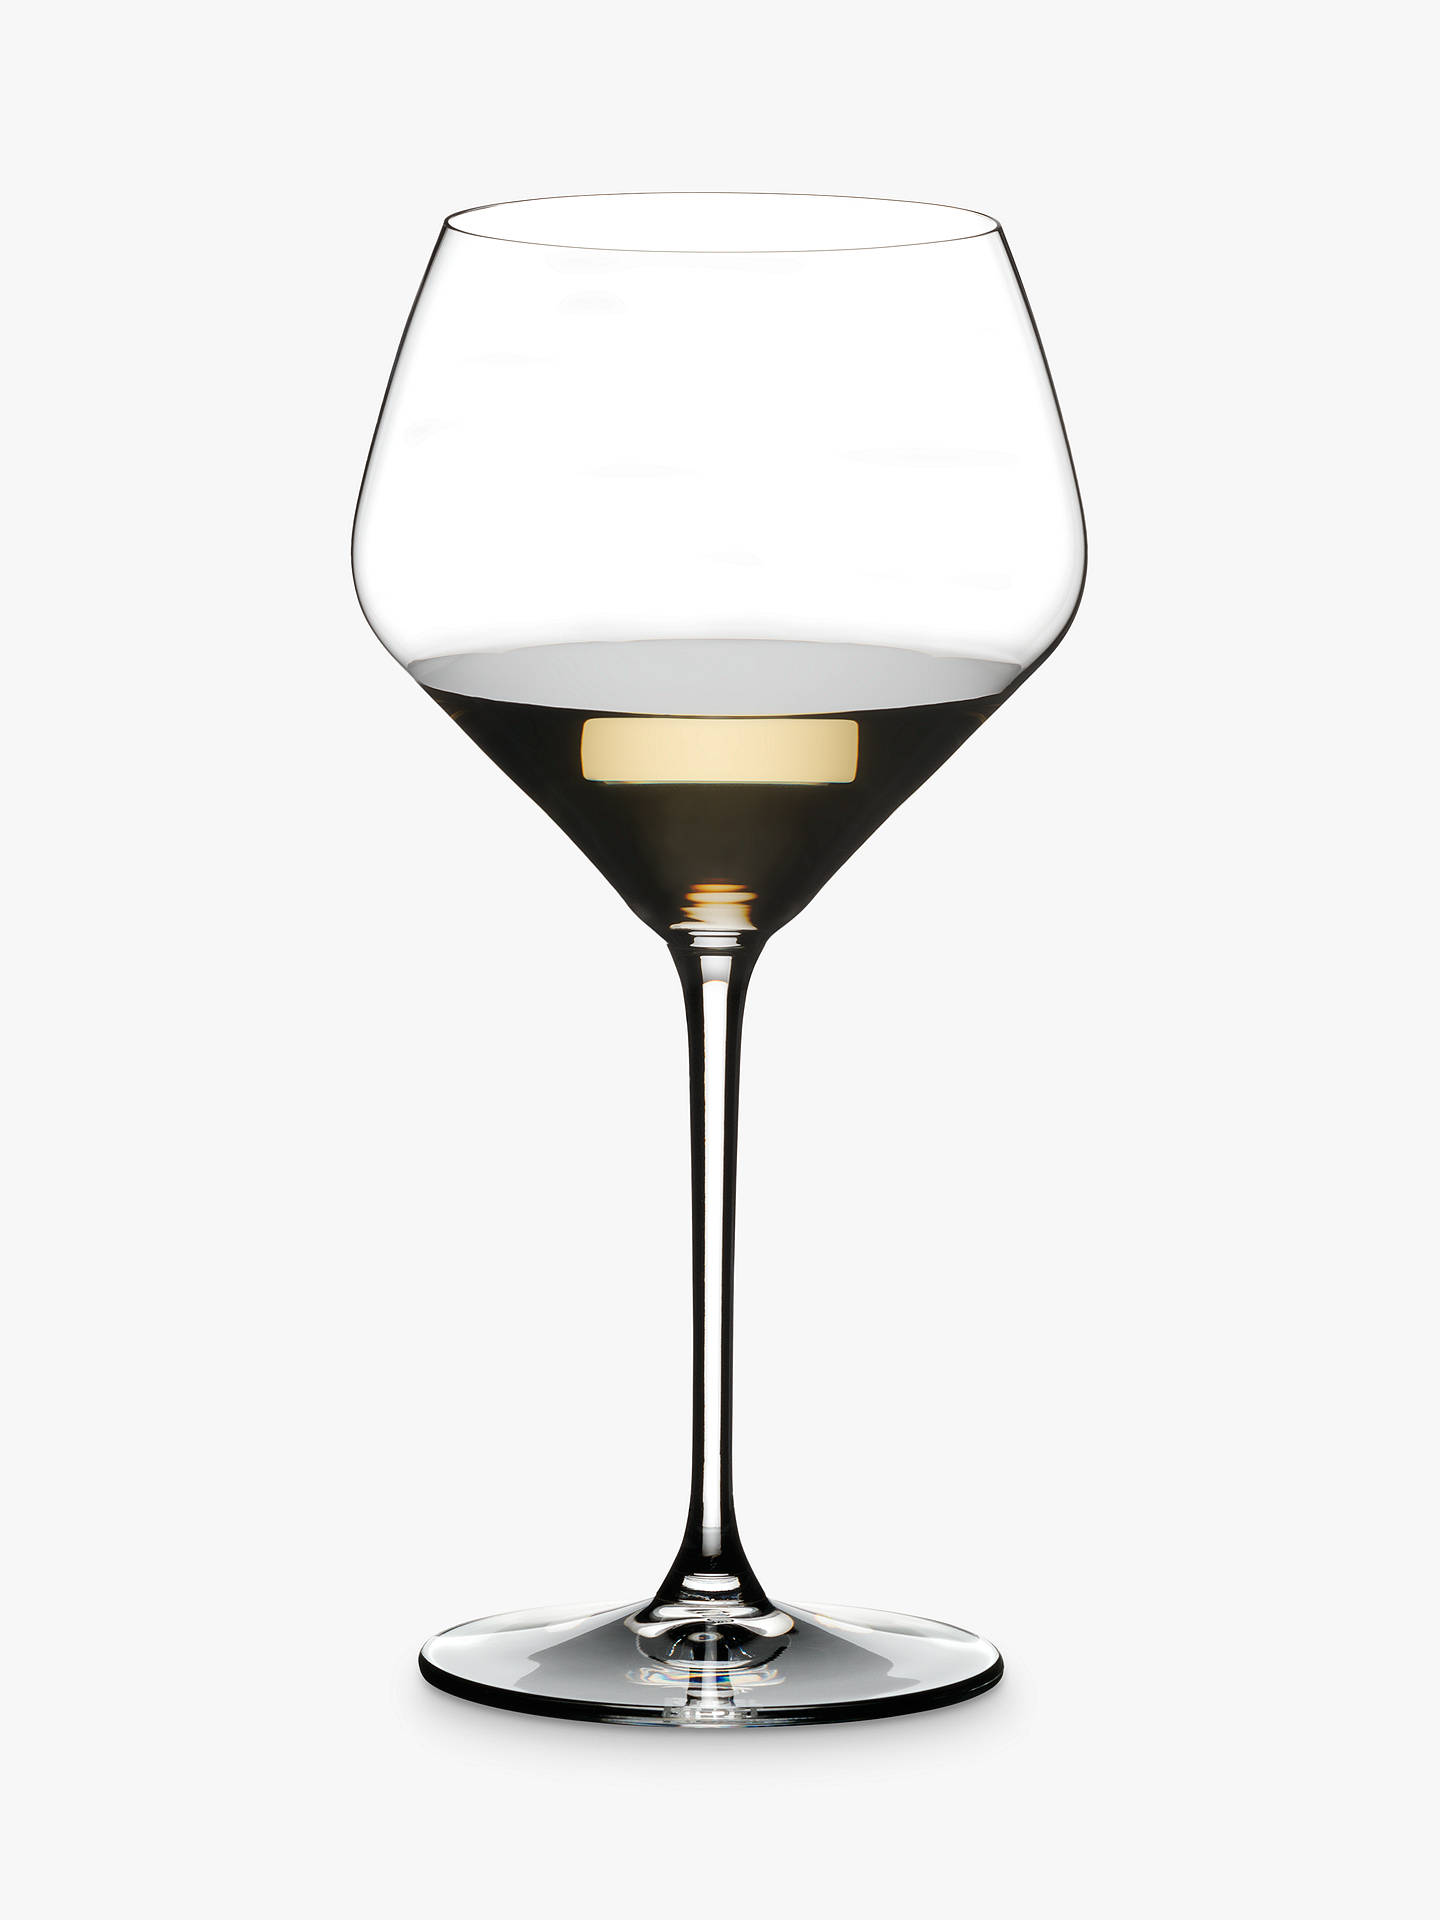 BuyRiedel See Smell Taste Oaked Chardonnay Crystal Wine Glass, Set of 2, 670ml, Clear Online at johnlewis.com